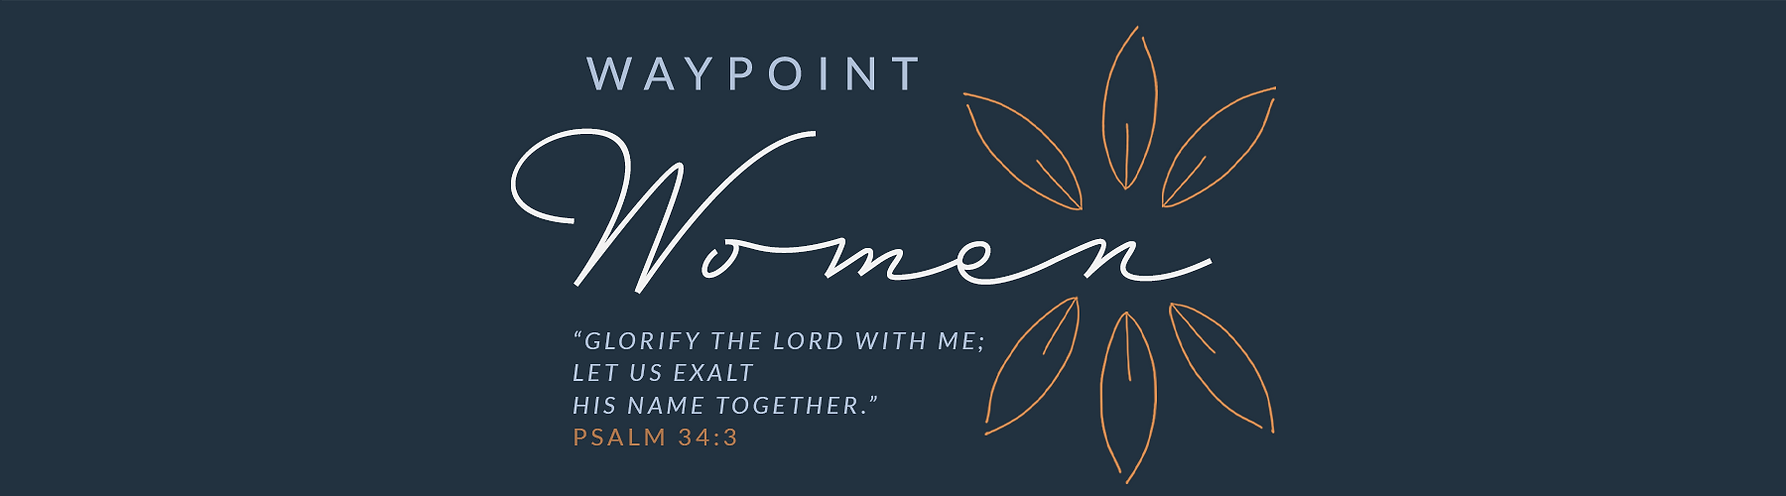 Waypoint_Womens_Web_2.png